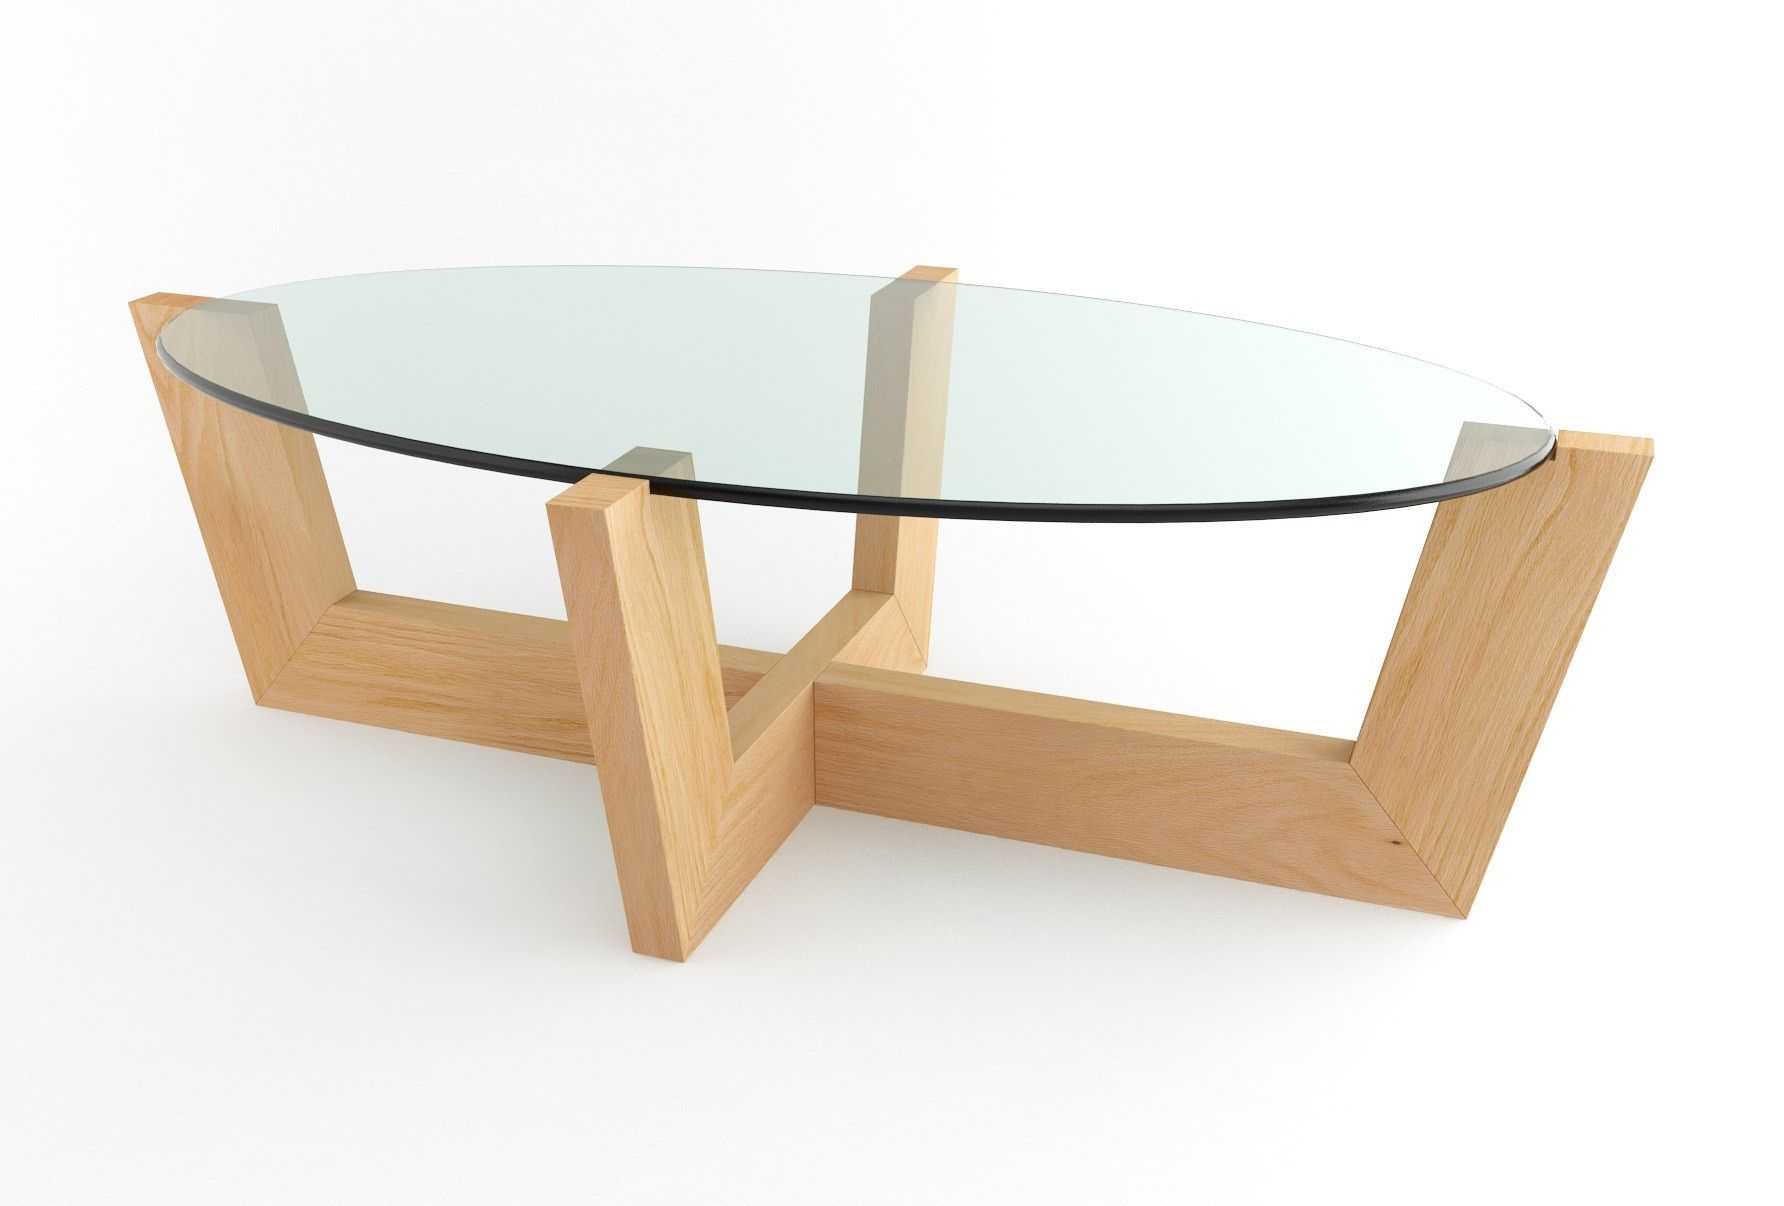 Creative Minimalist Small Oval Coffee Table For Living Room Small